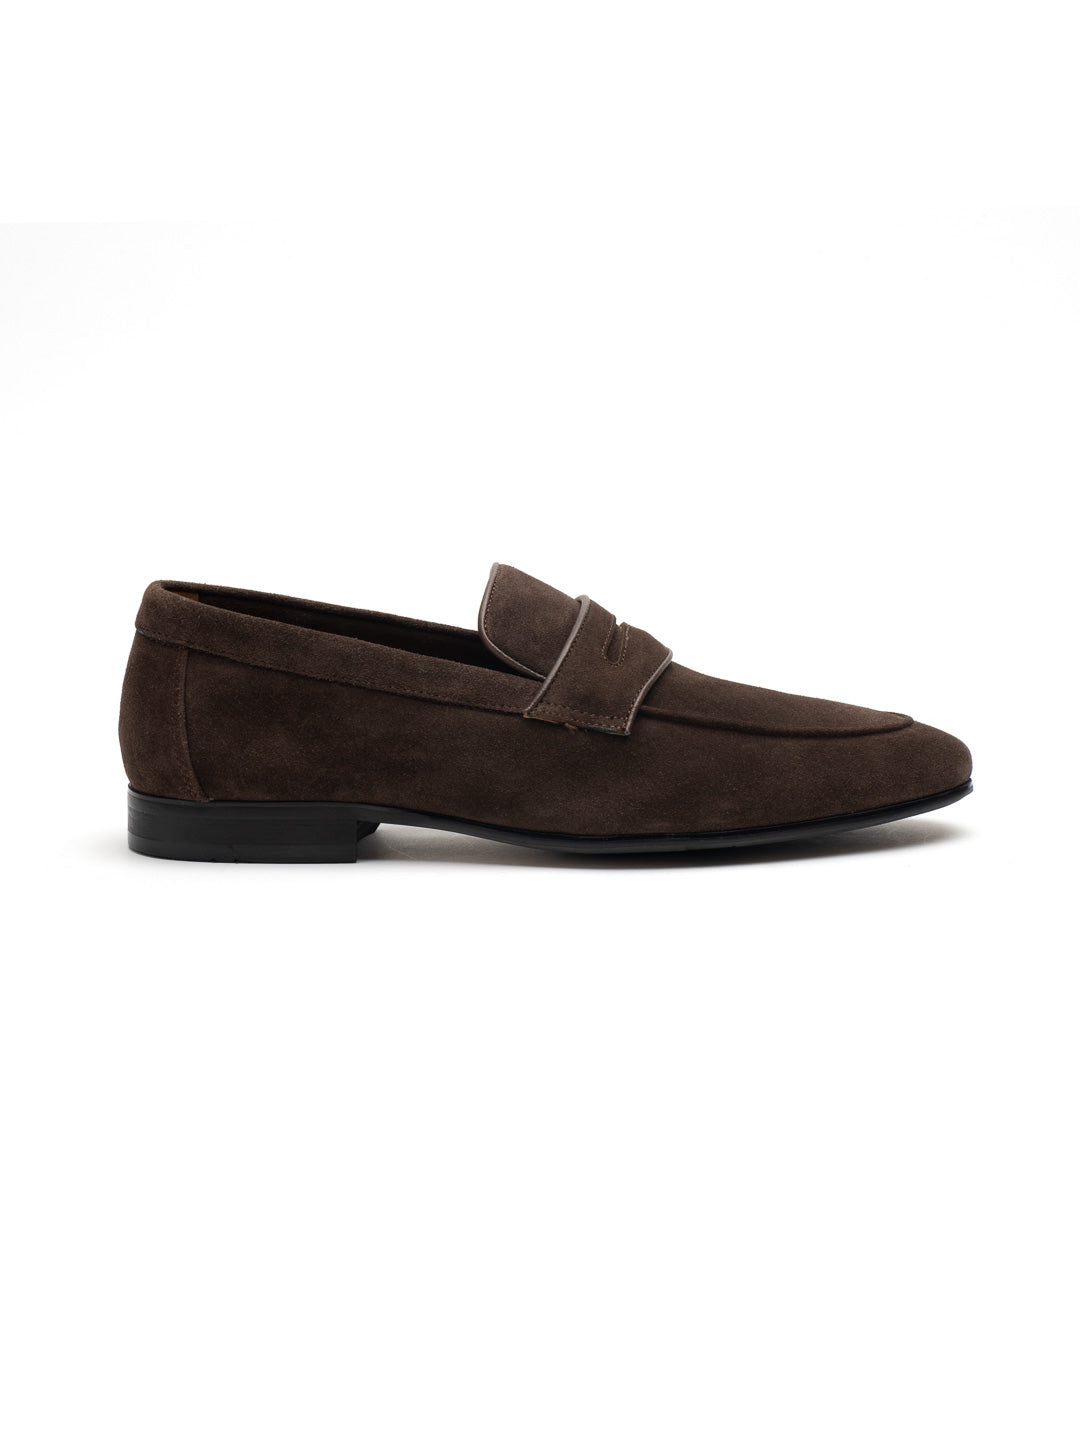 Mosey Brown Penny Loafers